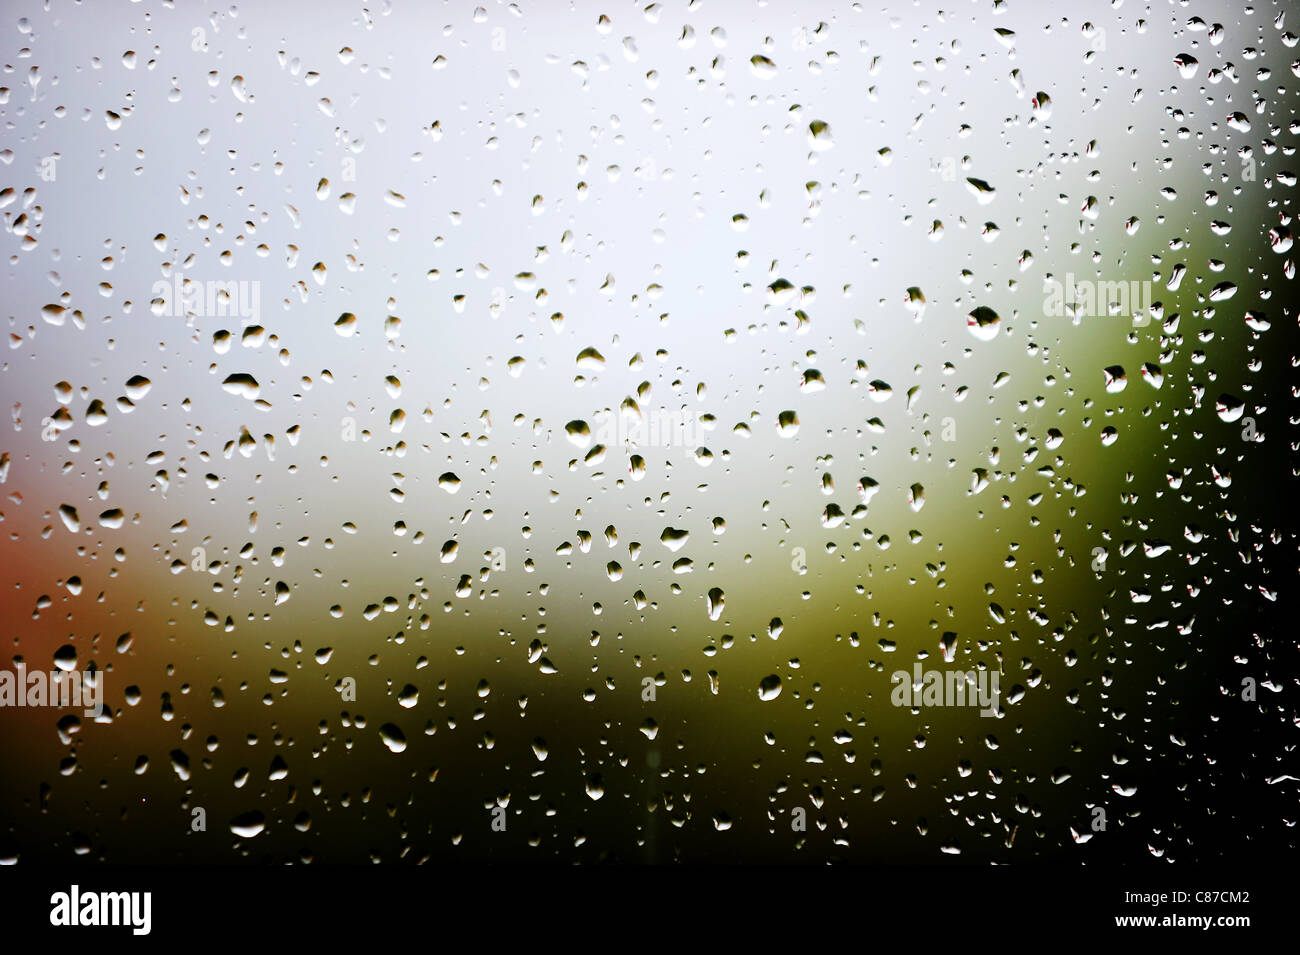 Rain on windows of a house in Bolton, Lancashire, England. Picture by Paul Heyes, Sunday October 09, 2011. - Stock Image